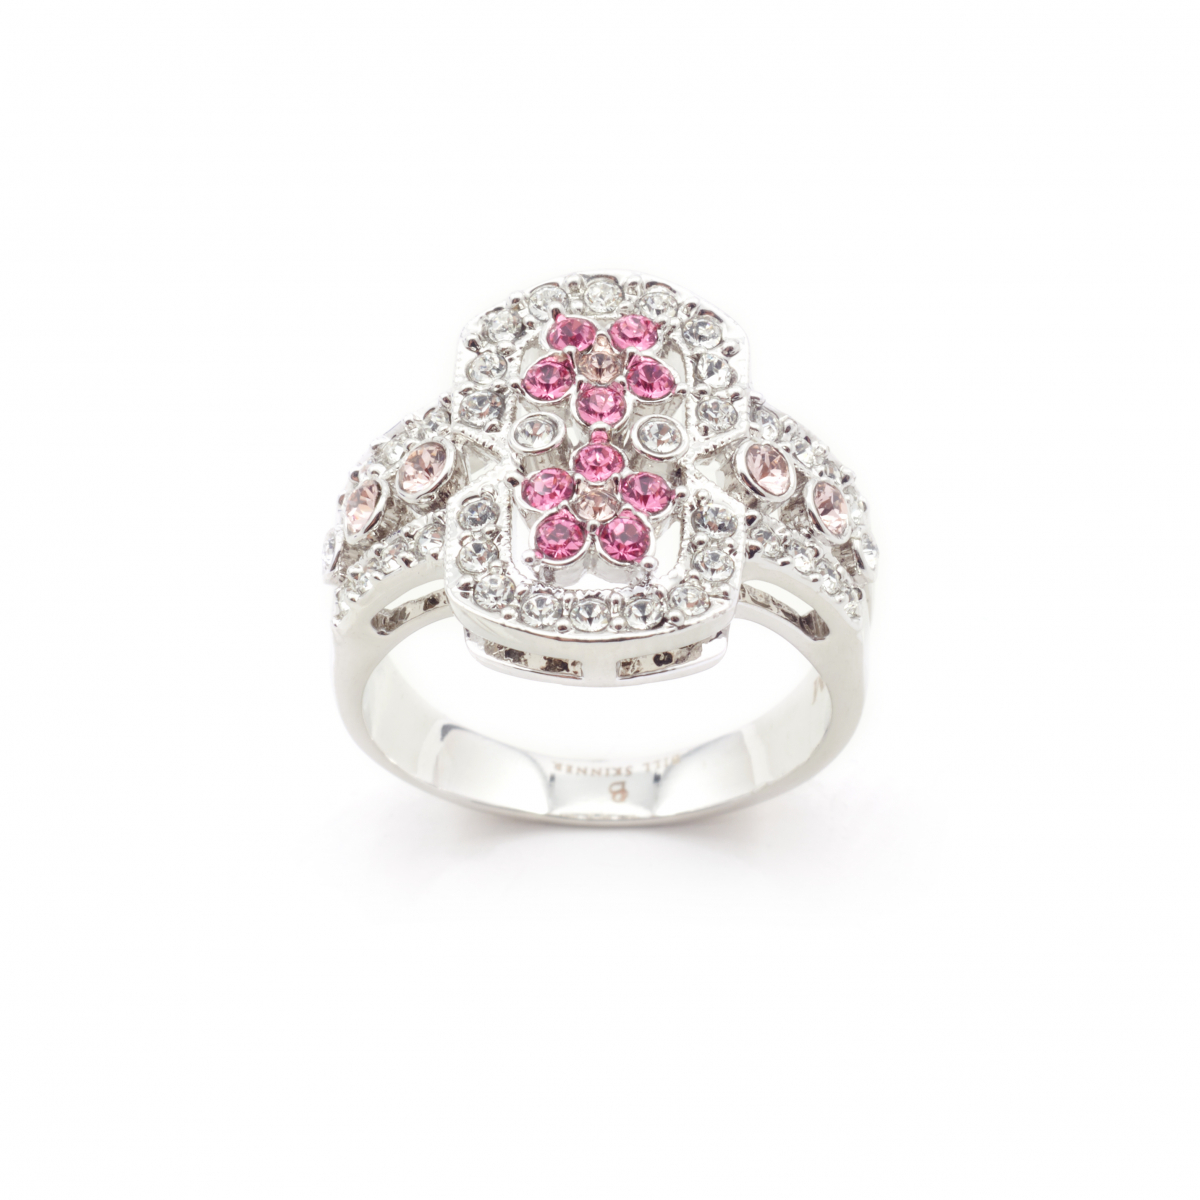 Archive Pink Crystal Ring - Size Large